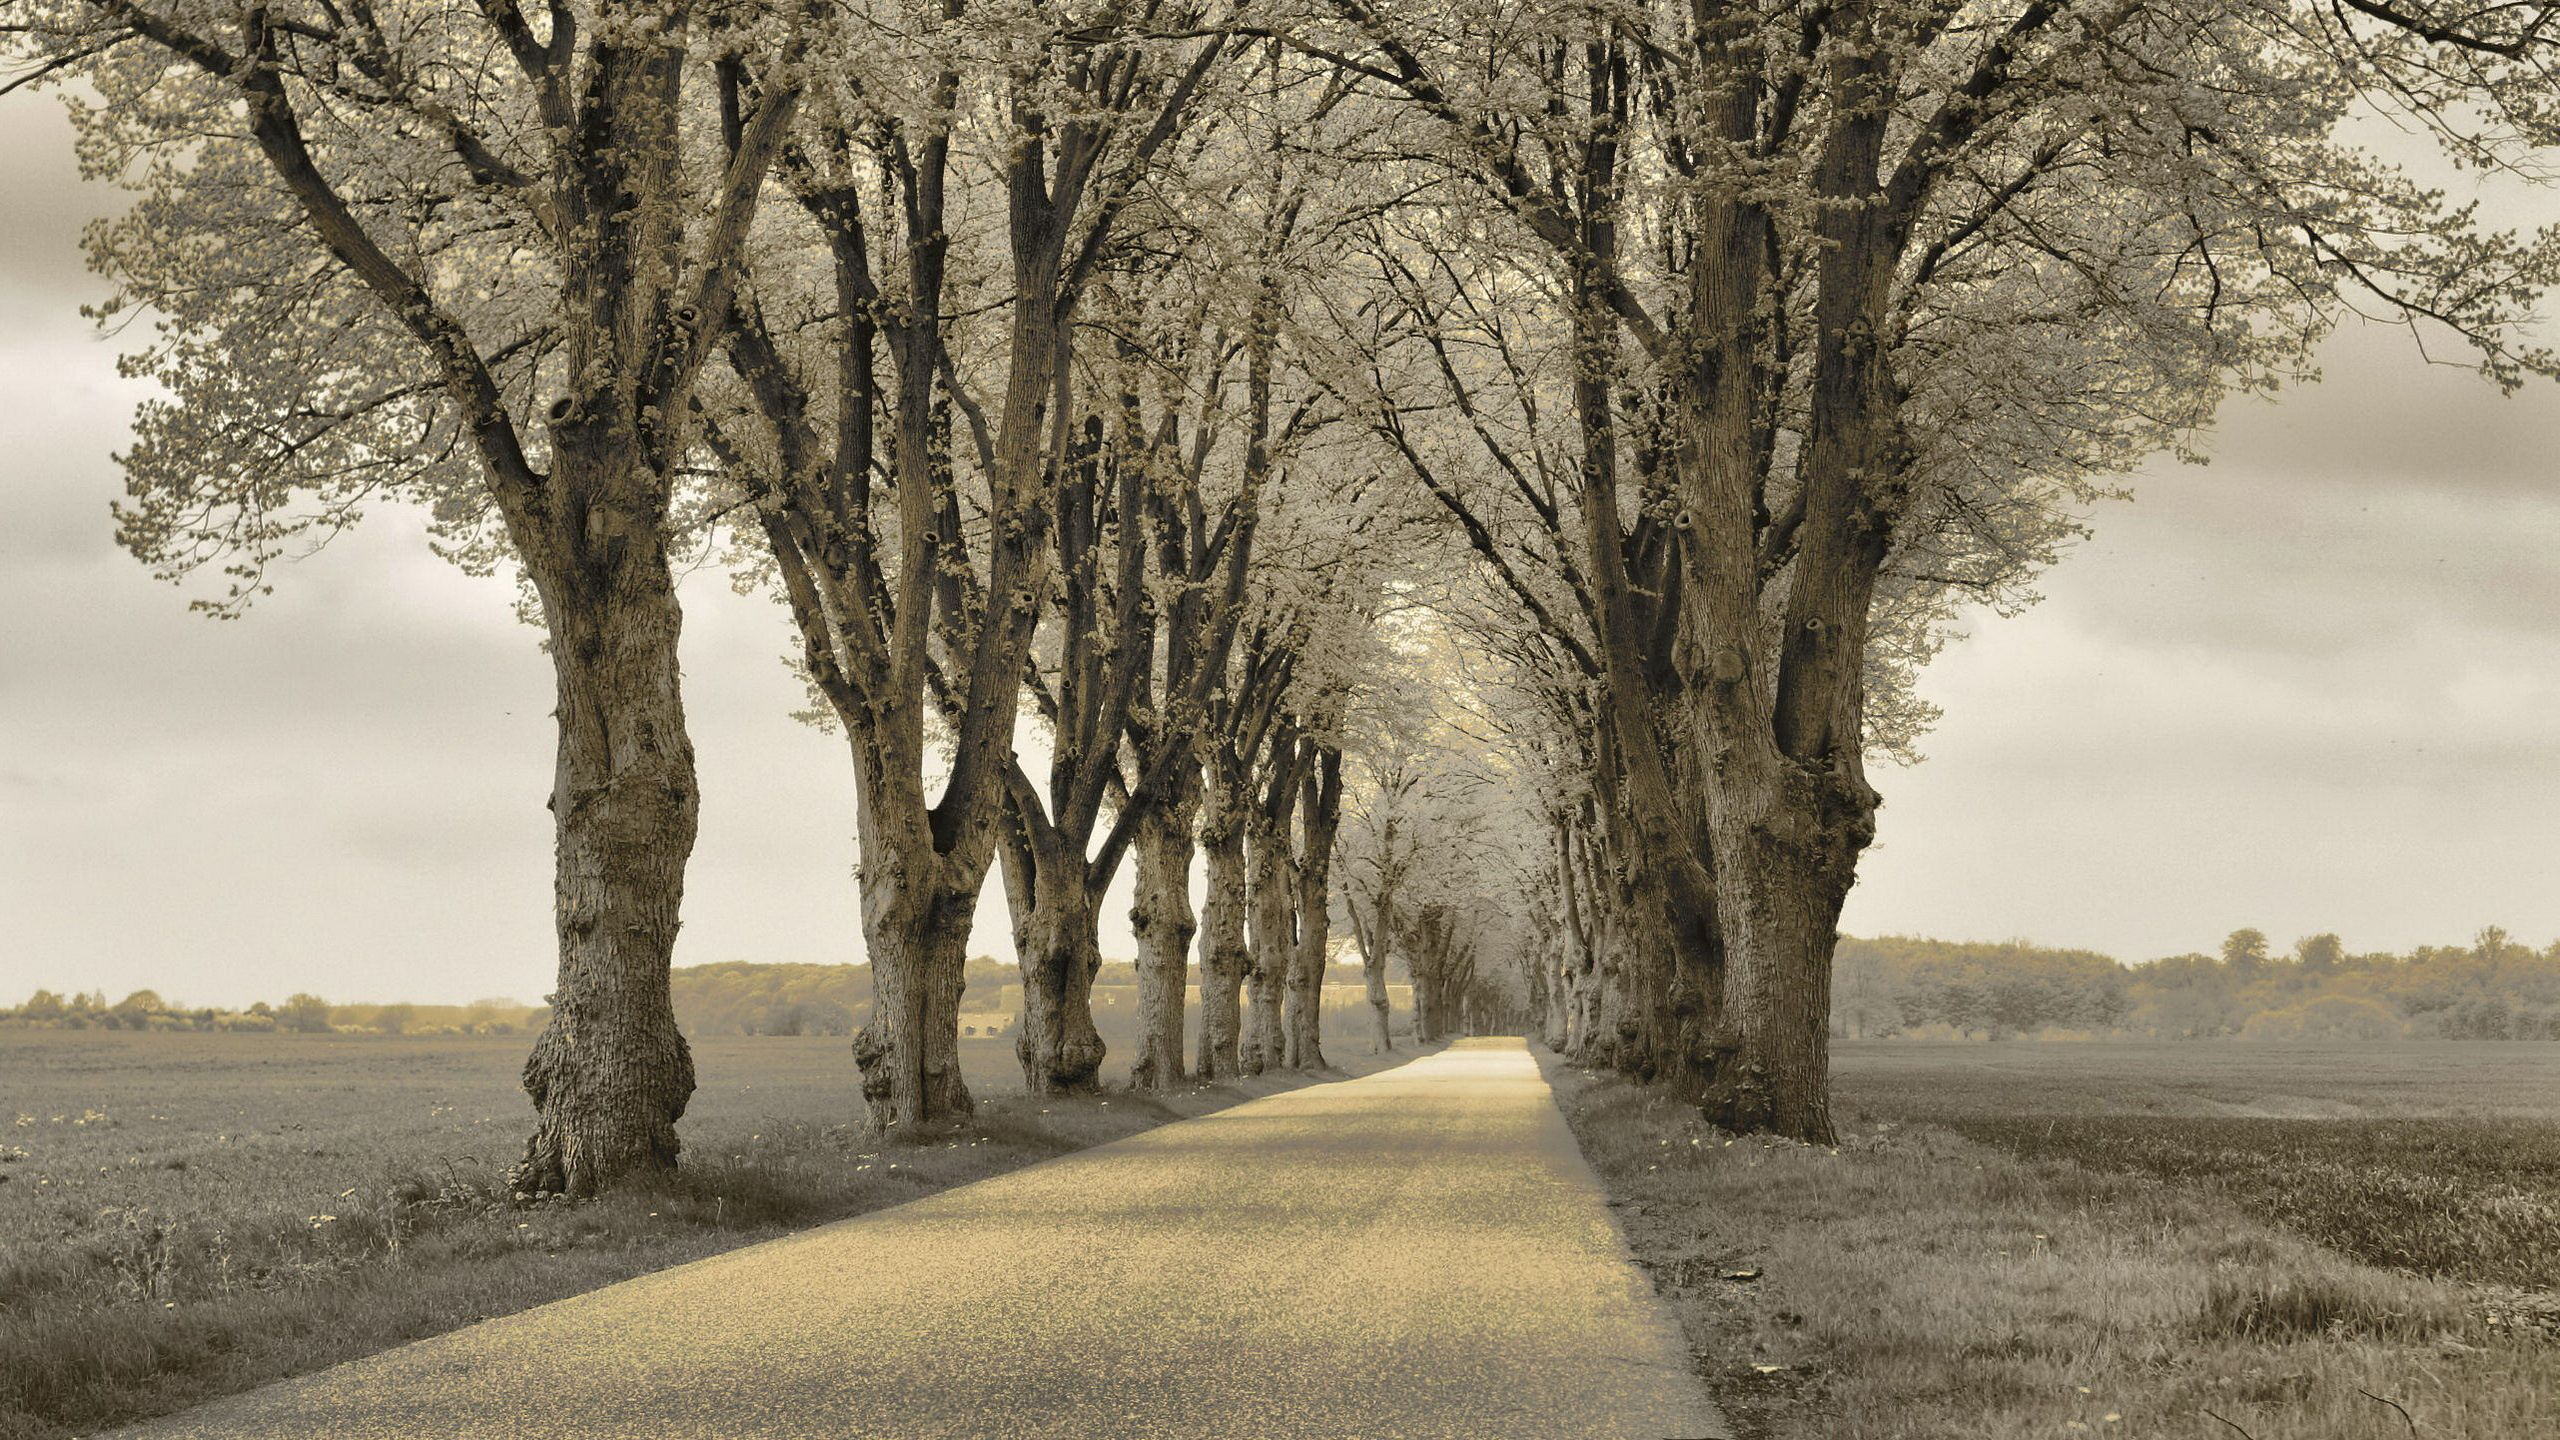 140620 free download Gray wallpapers for phone, Nature, Trees, Asphalt, Track Gray images and screensavers for mobile